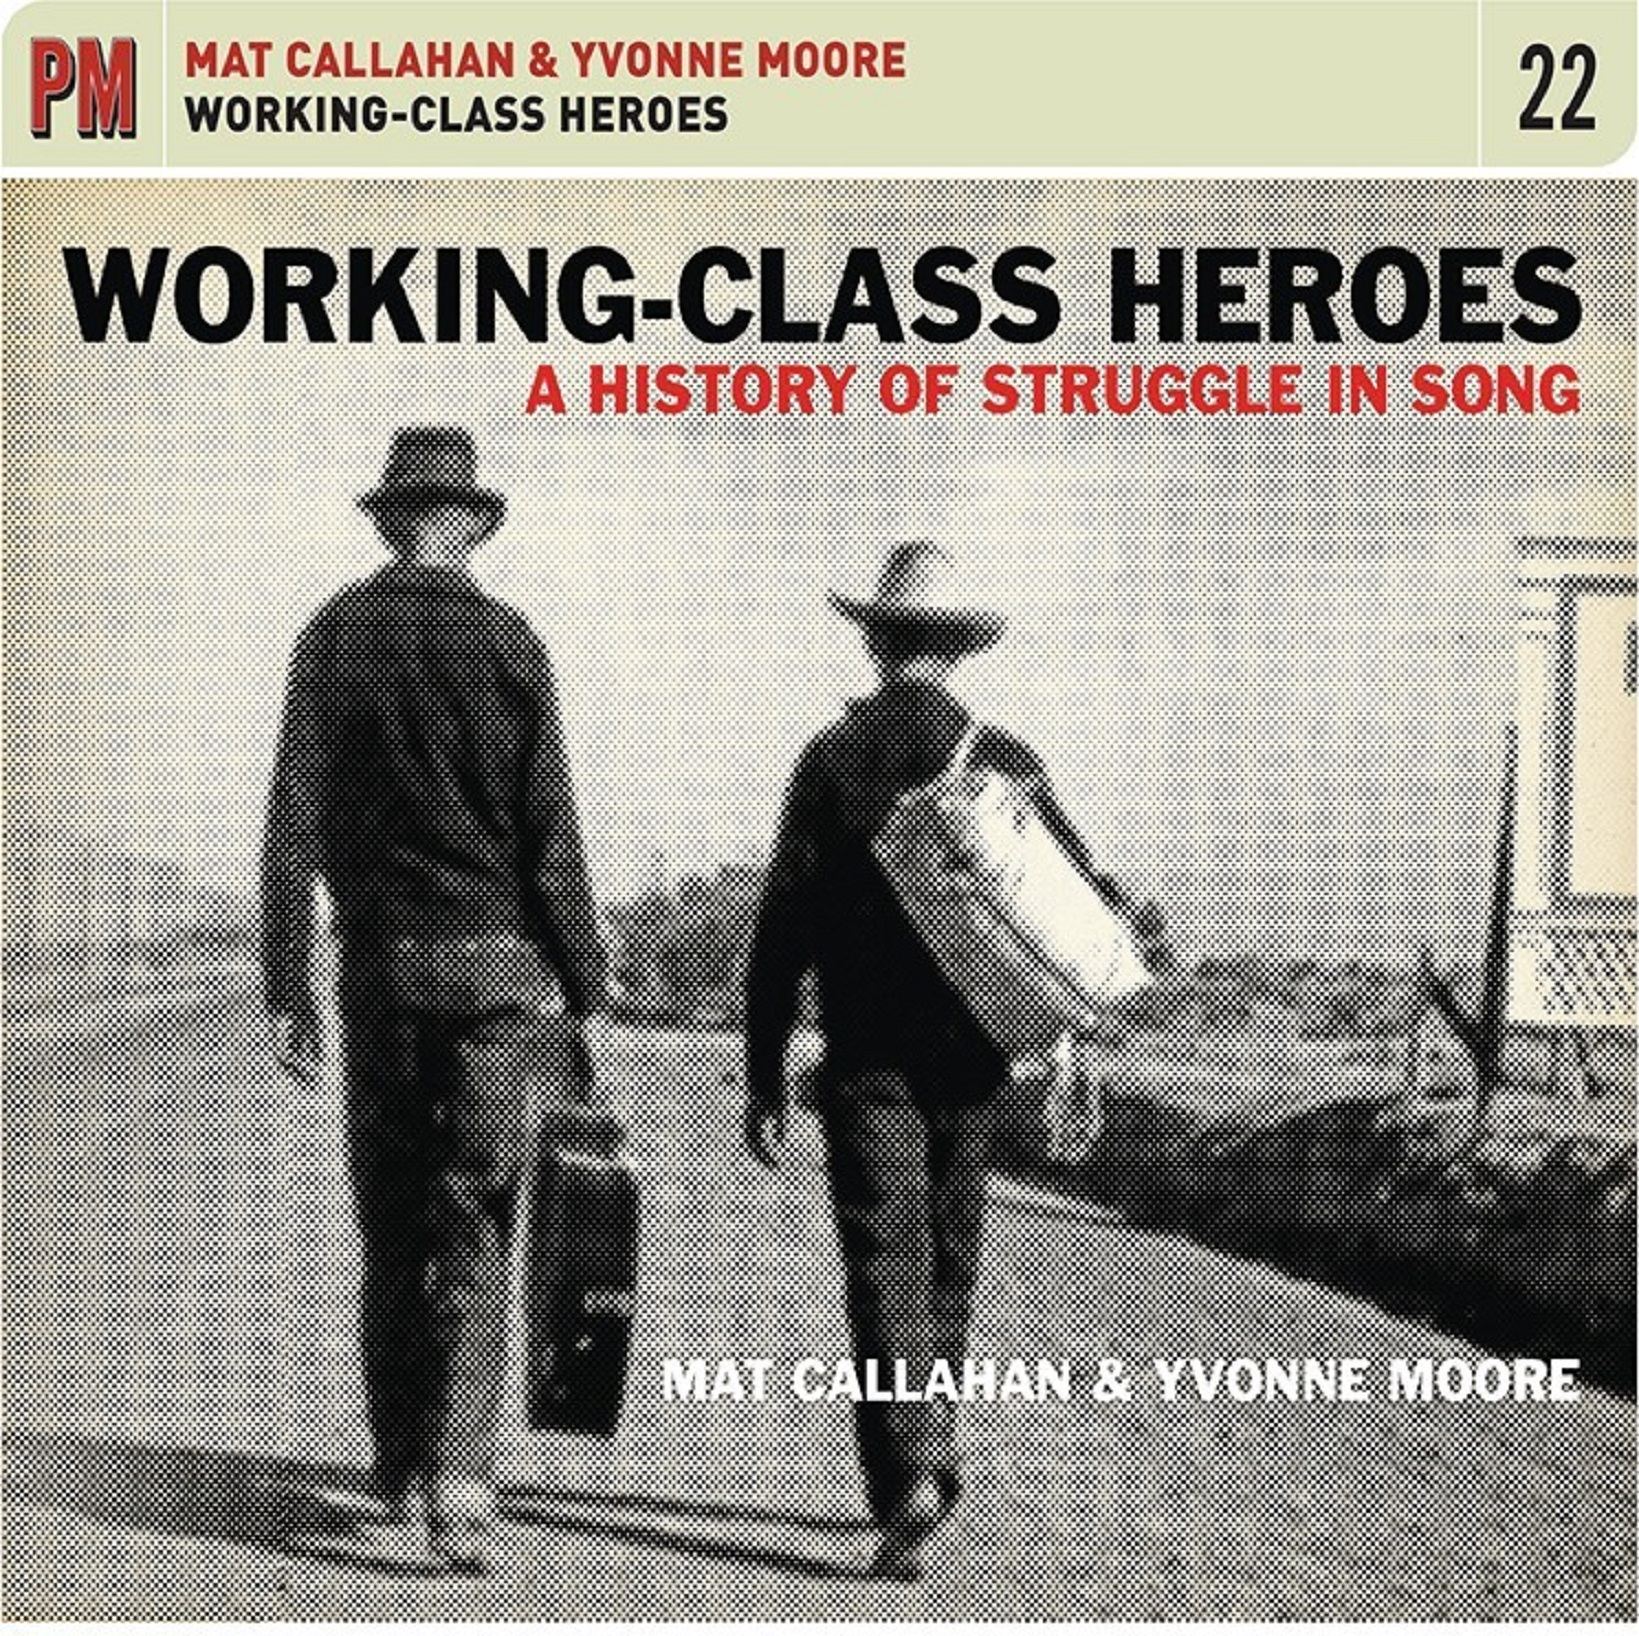 Working-Class Heroes: A History of Struggle and Song, coming June 7th